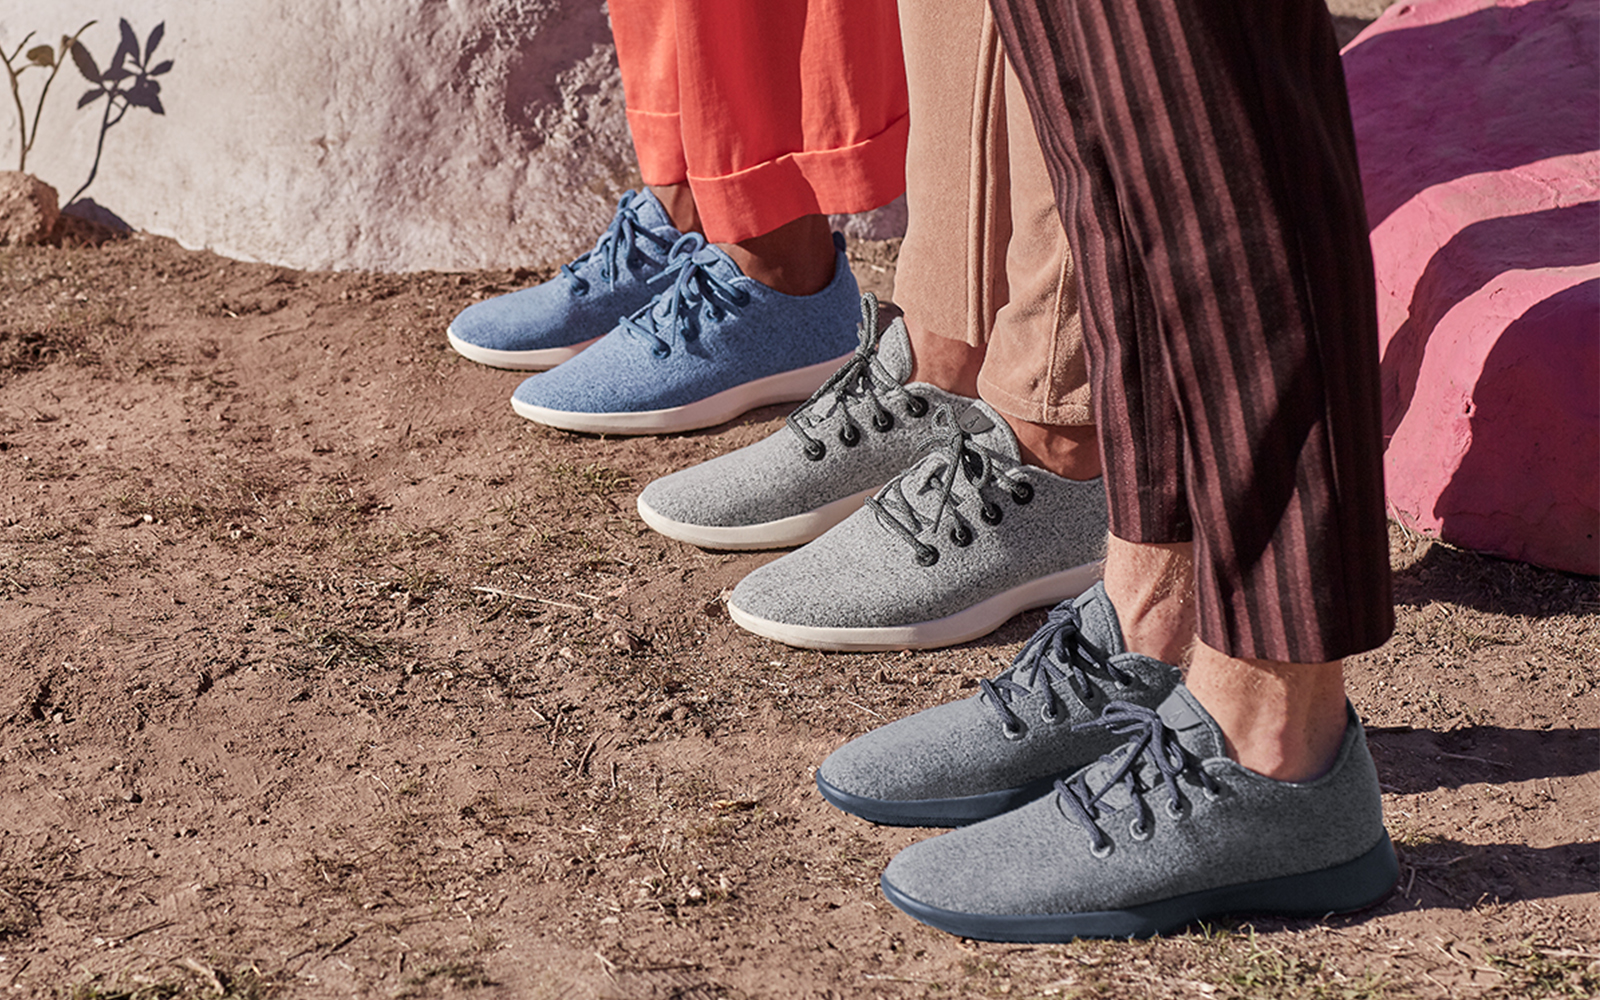 Allbirds' Cult-favorite Comfy Sneakers Now Come in 8 New Colors for Spring